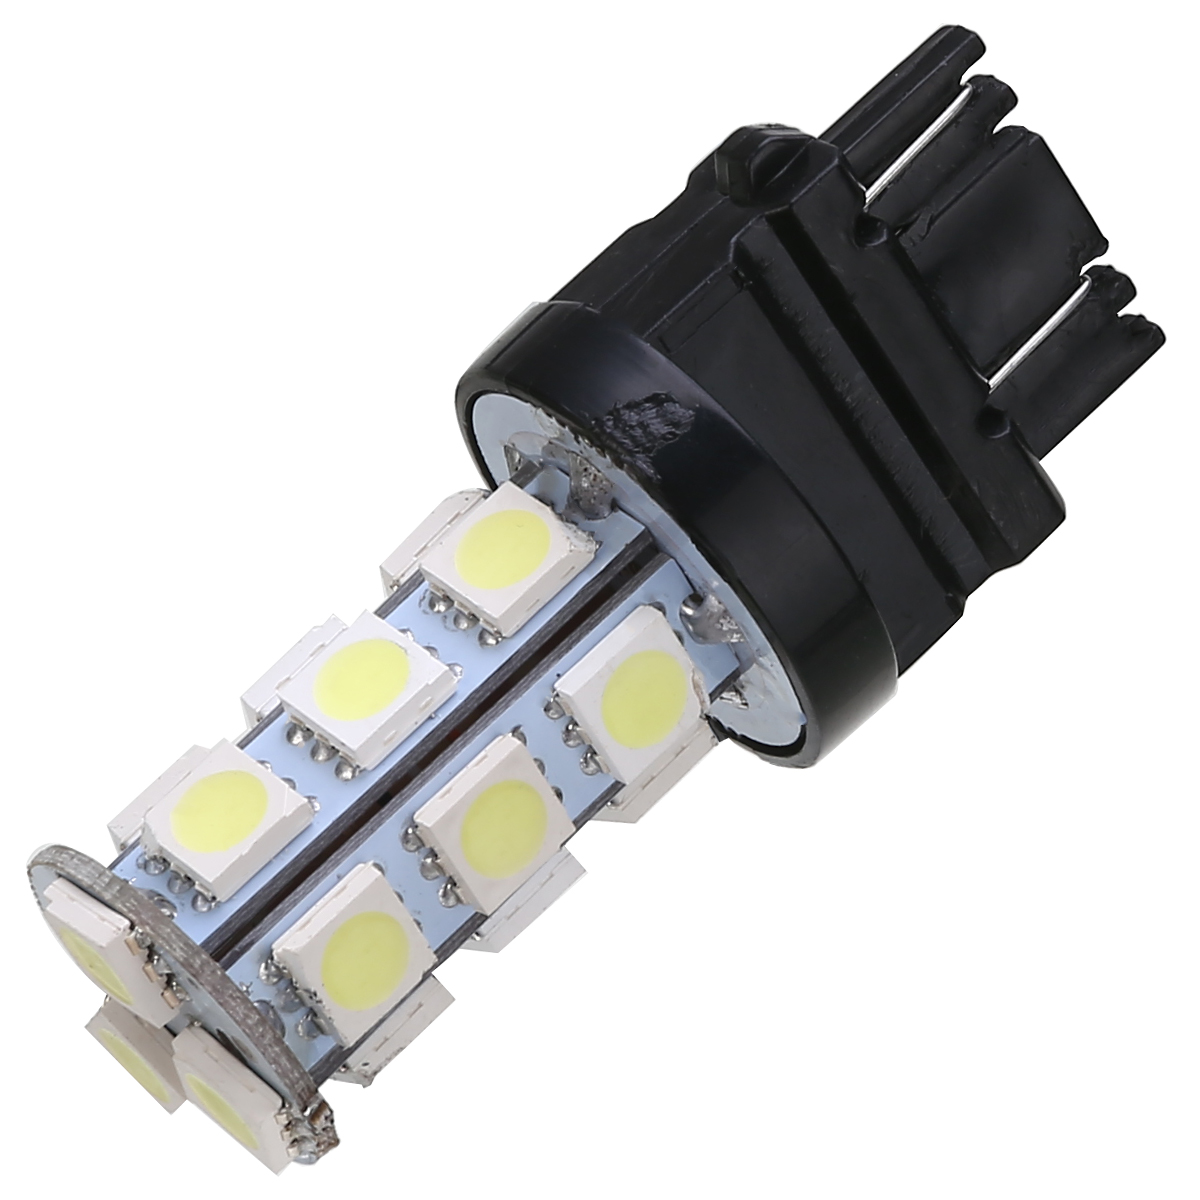 10pcs 12V 3157 18SMD Car Tail Bulb Brake Lights Auto Daytime Running Light Reverse Lamp 6000K White Turn Signal Light